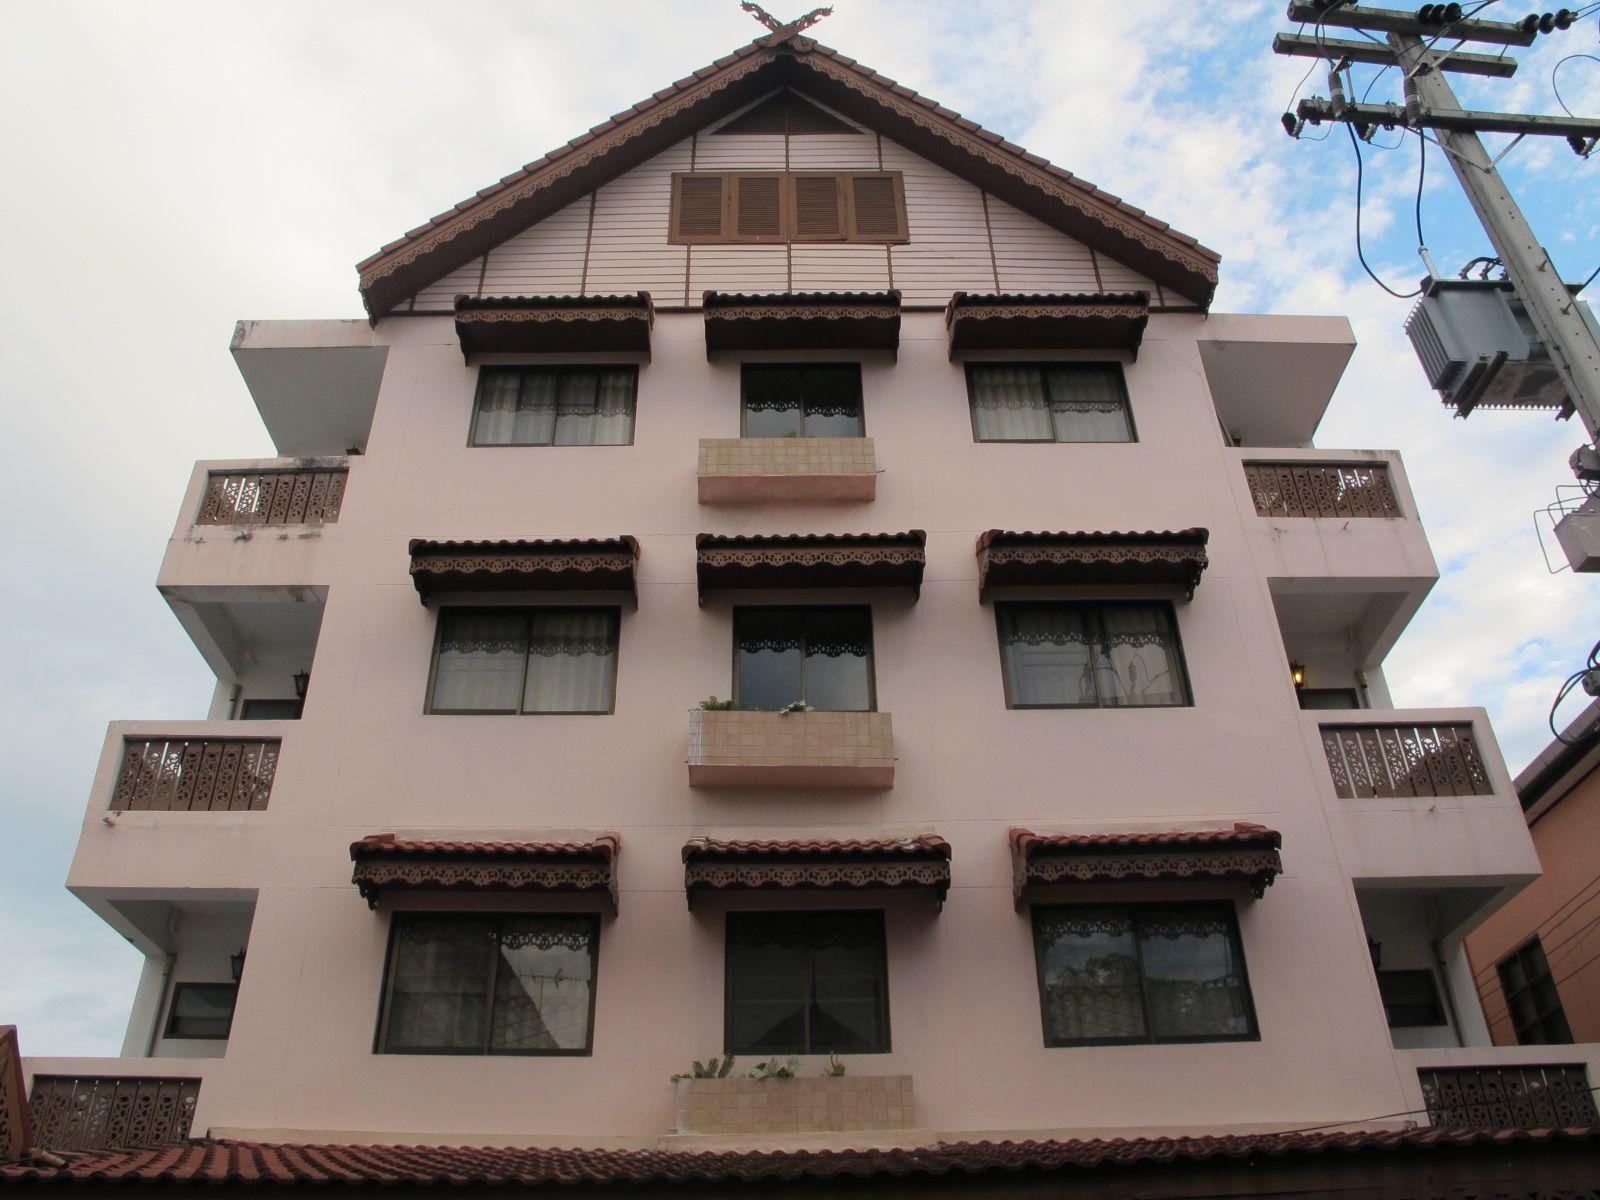 Bow chiang mai house old city chiang mai thailand for Classic house chiang mai